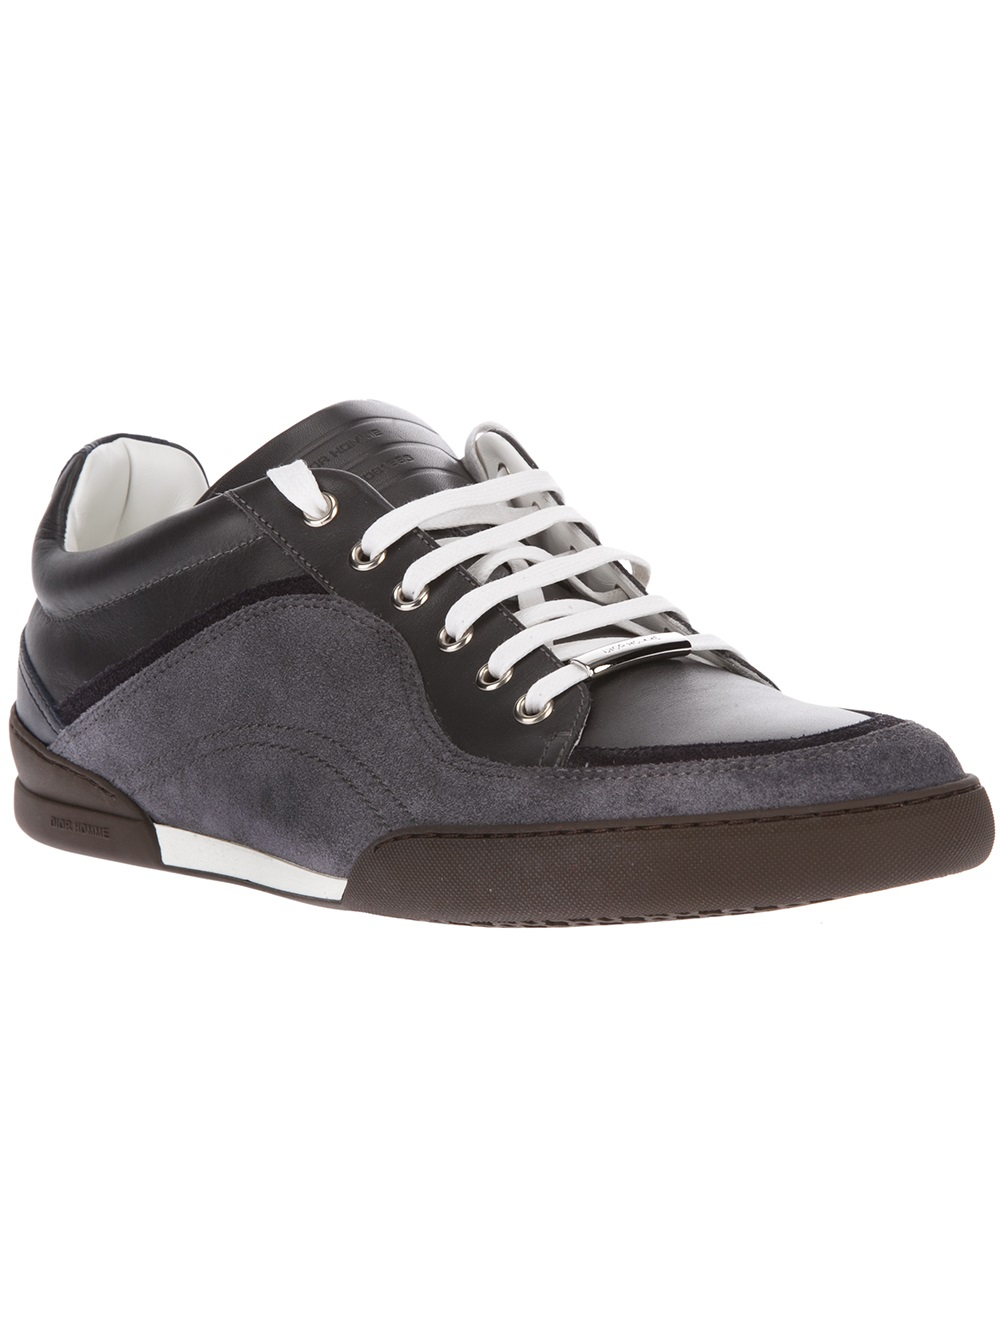 Lyst Dior Homme Twotone Sneaker In Gray For Men